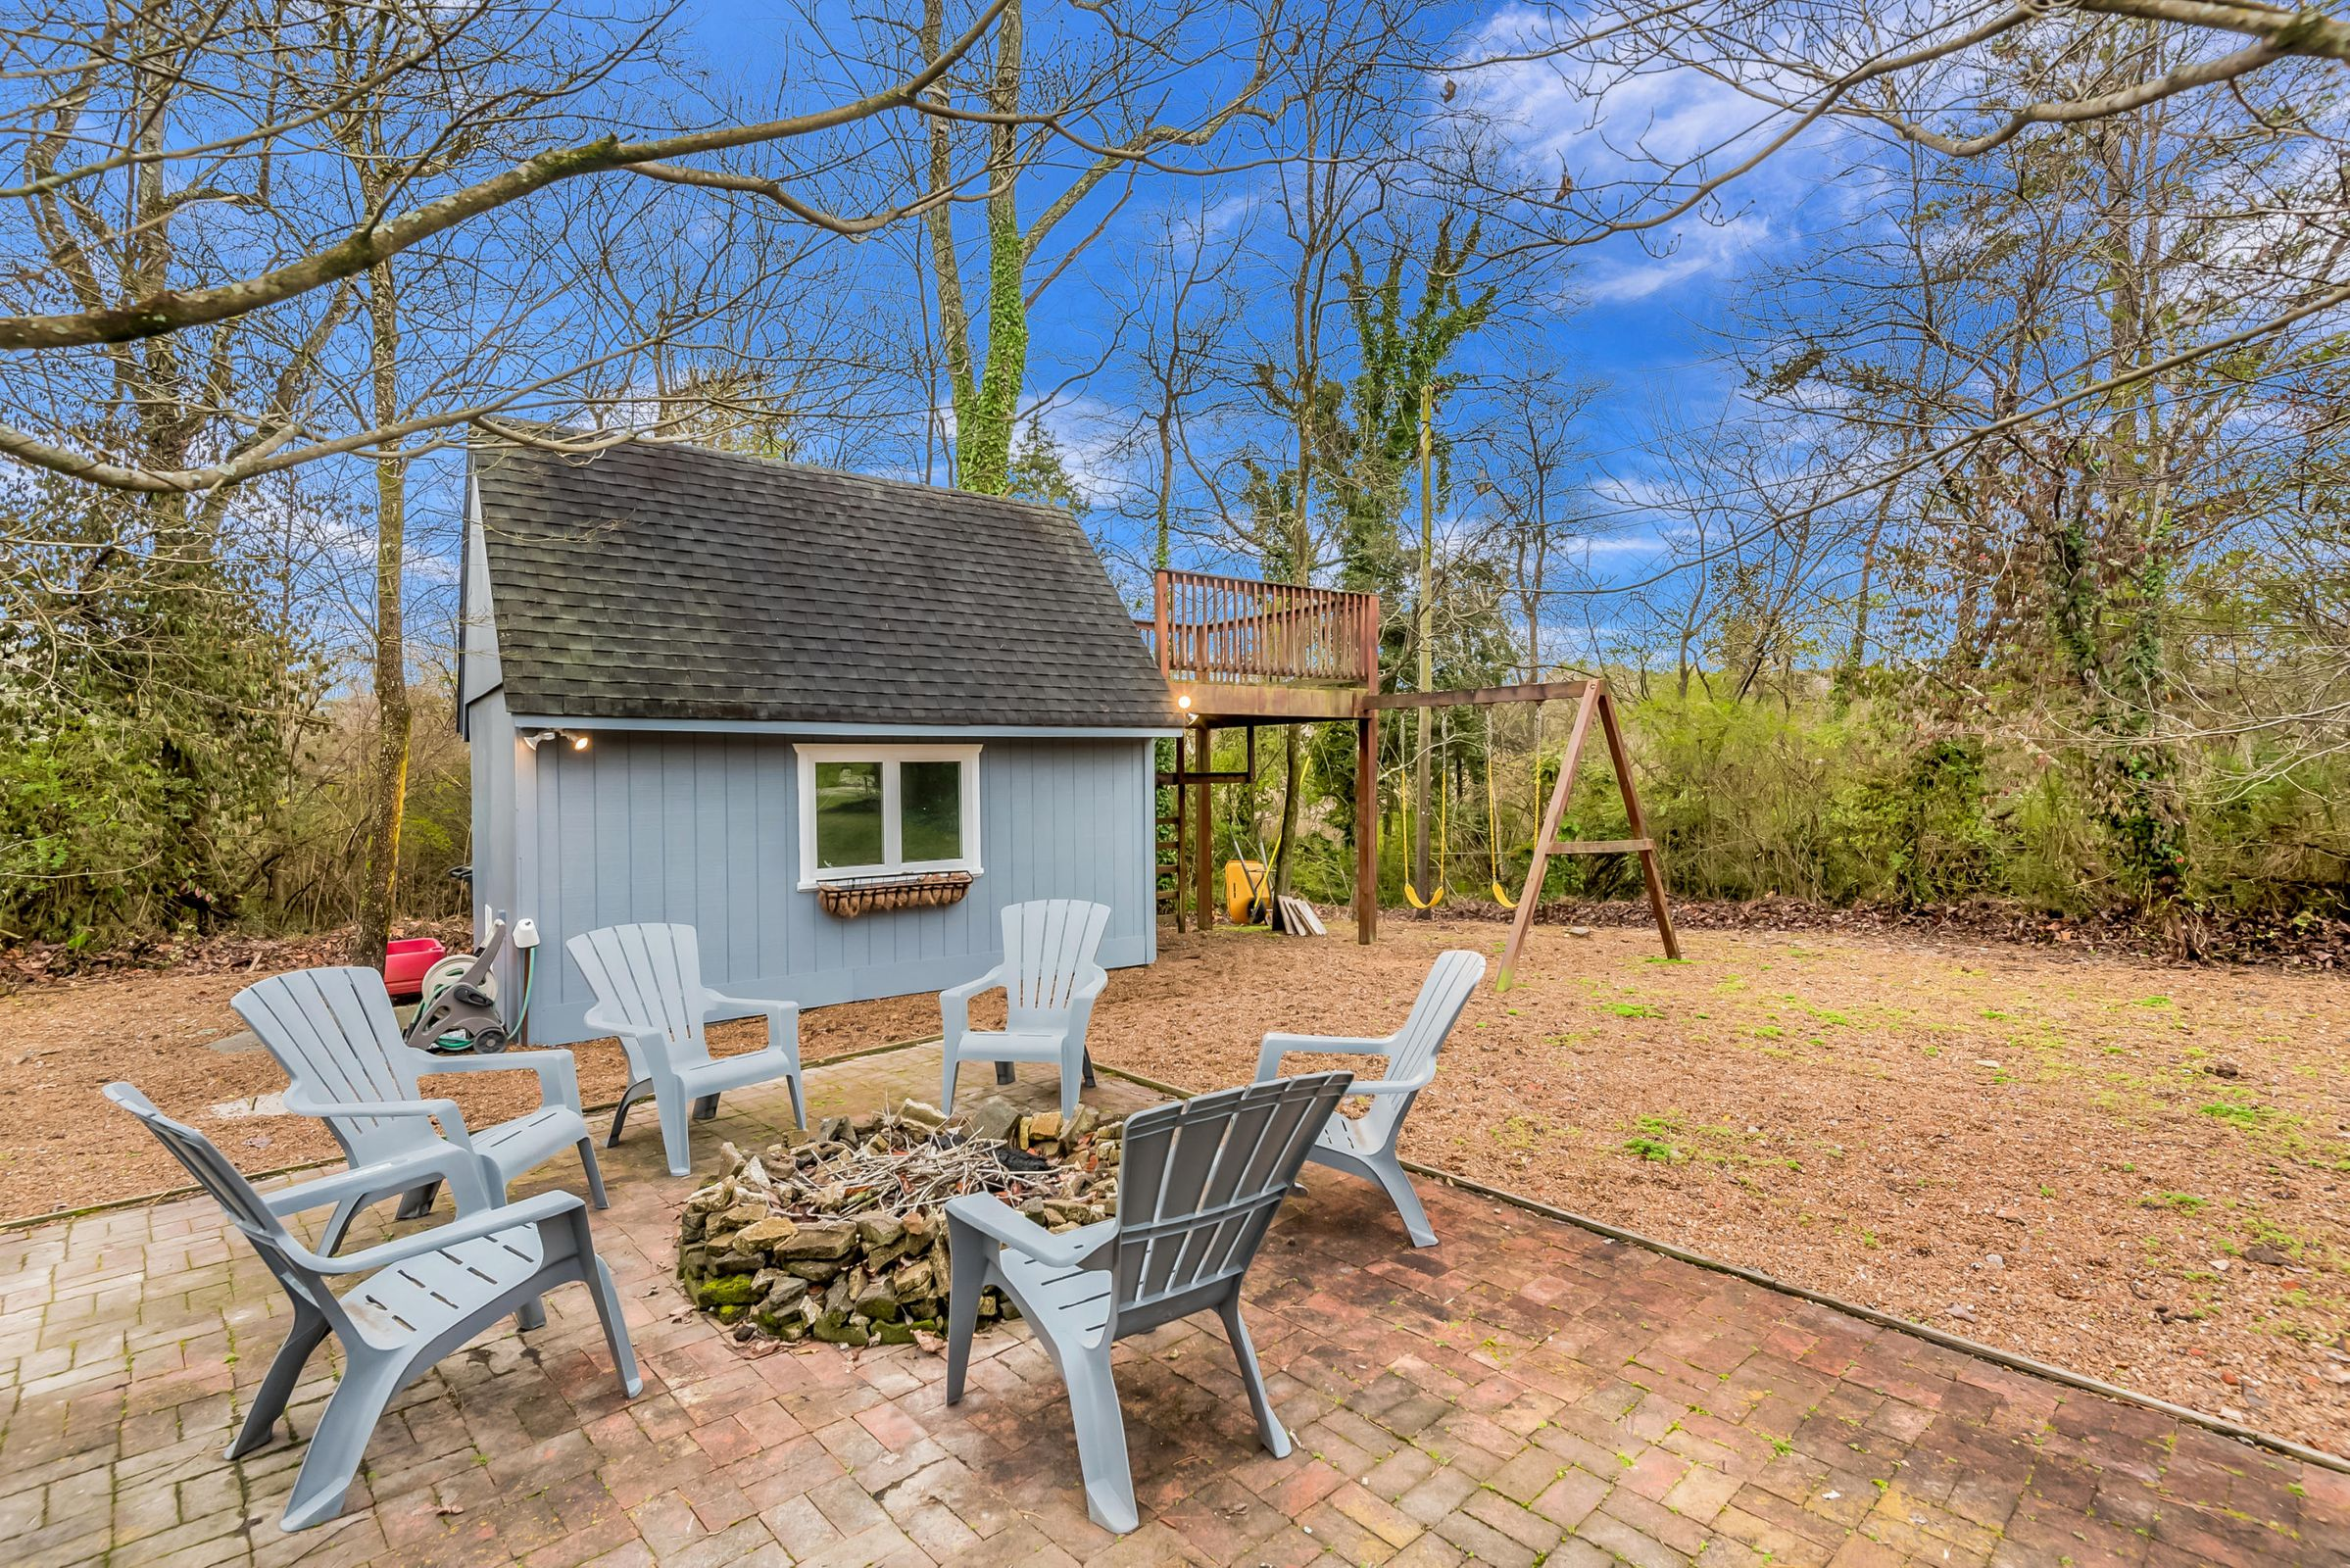 6612StoneMill-Playhouse:Garden Shed